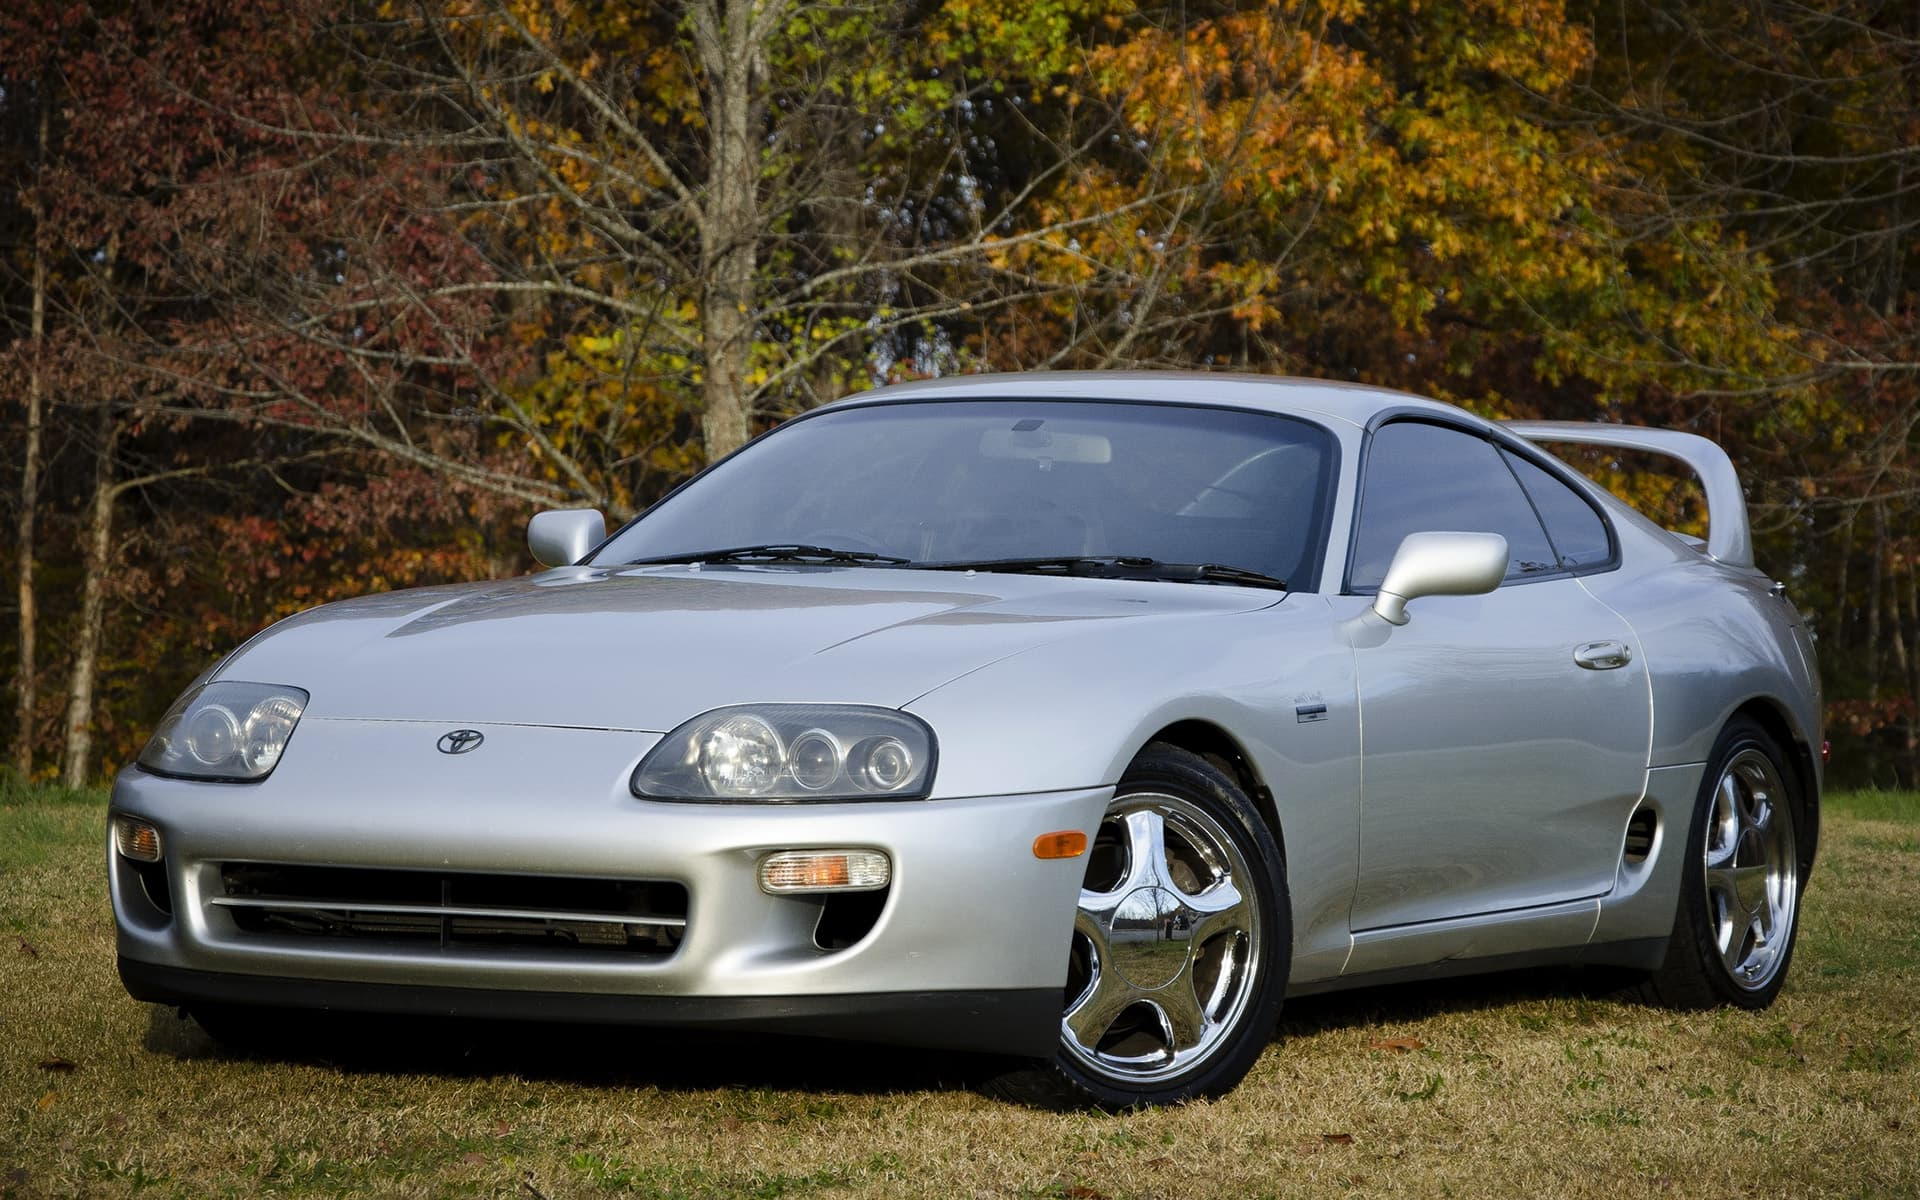 Toyota Supra 1997 Twin Turbo Wallpapers For Desktop